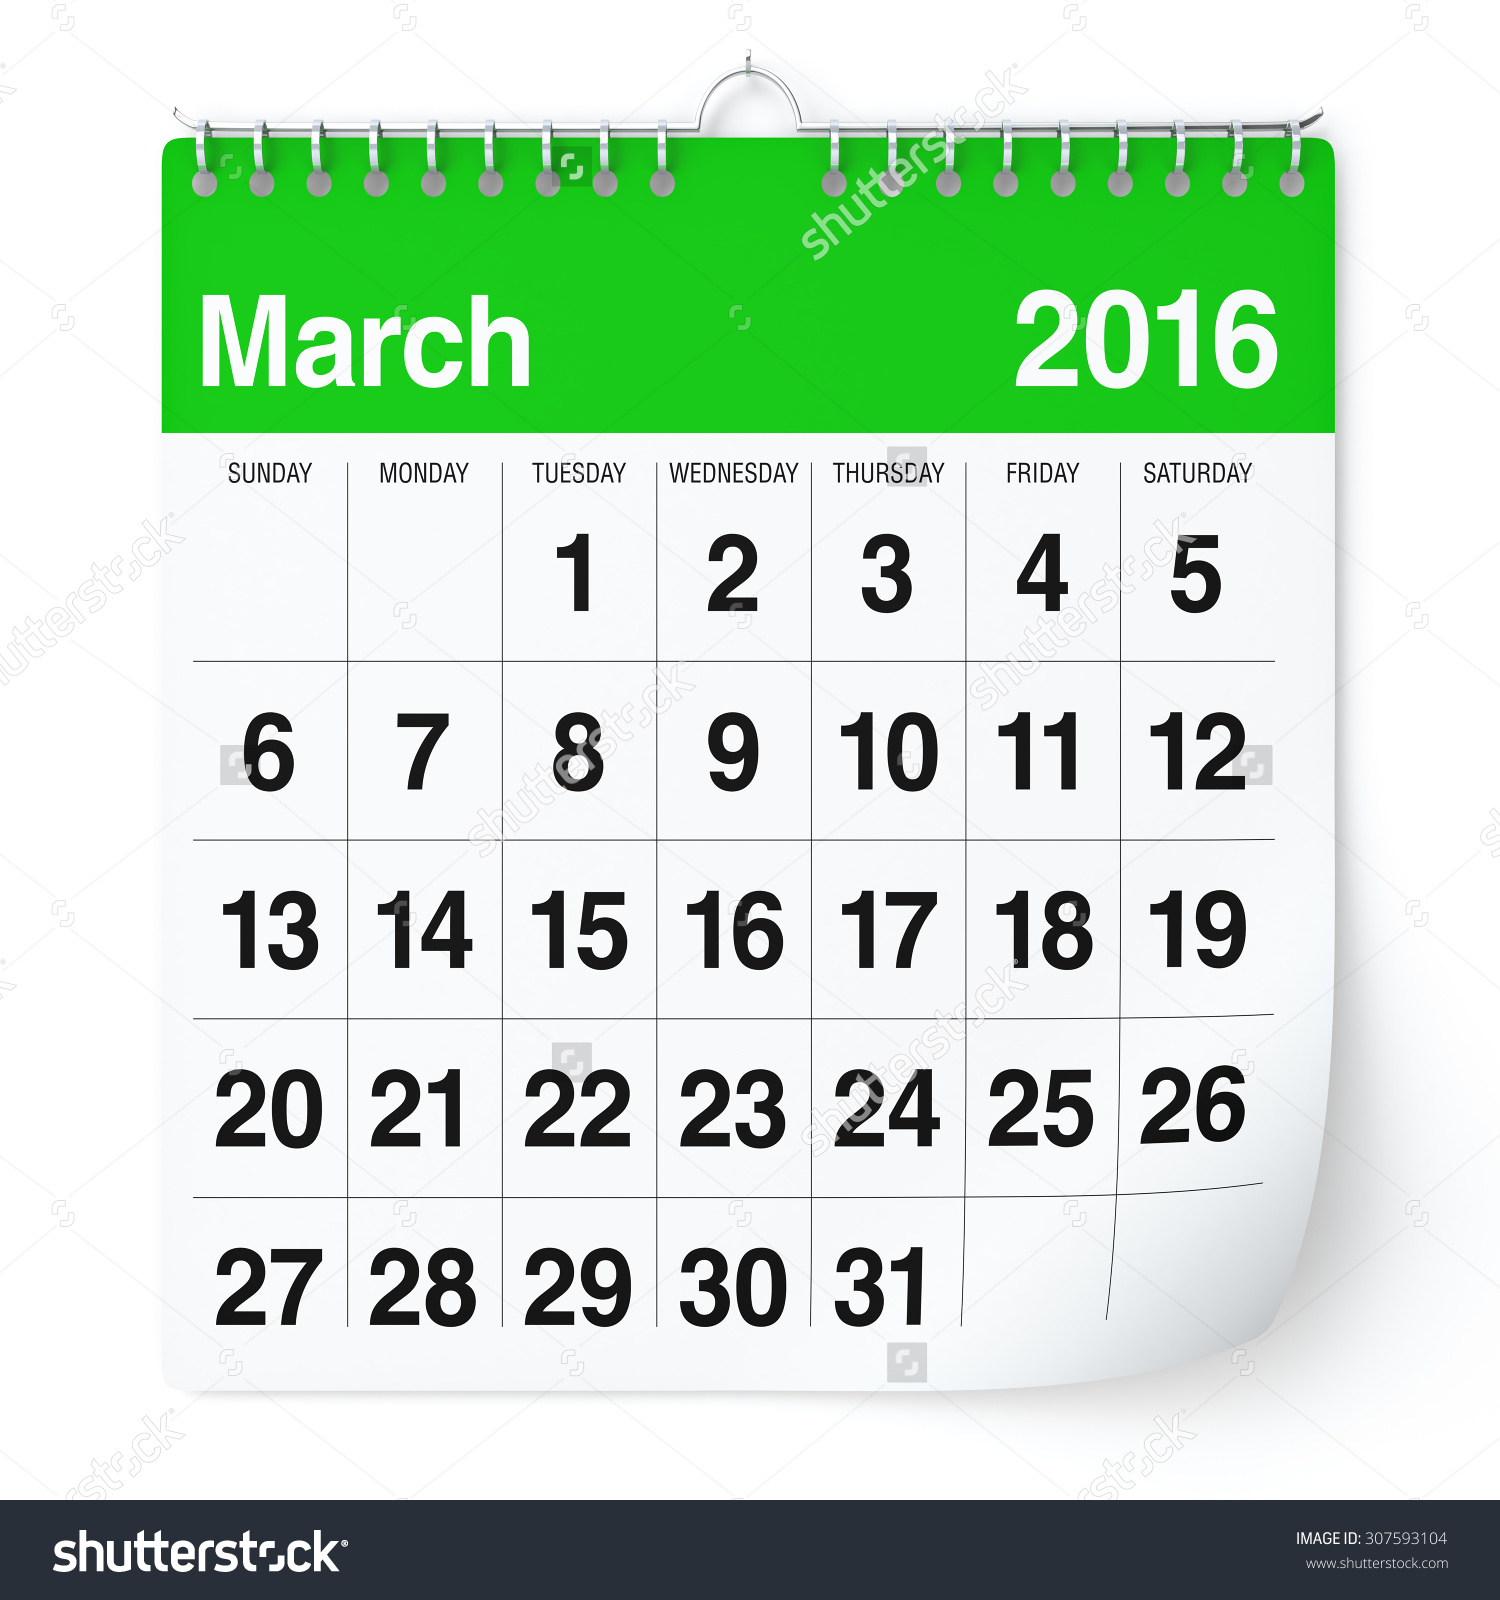 March 1 calendar page clipart - ClipartFest banner freeuse